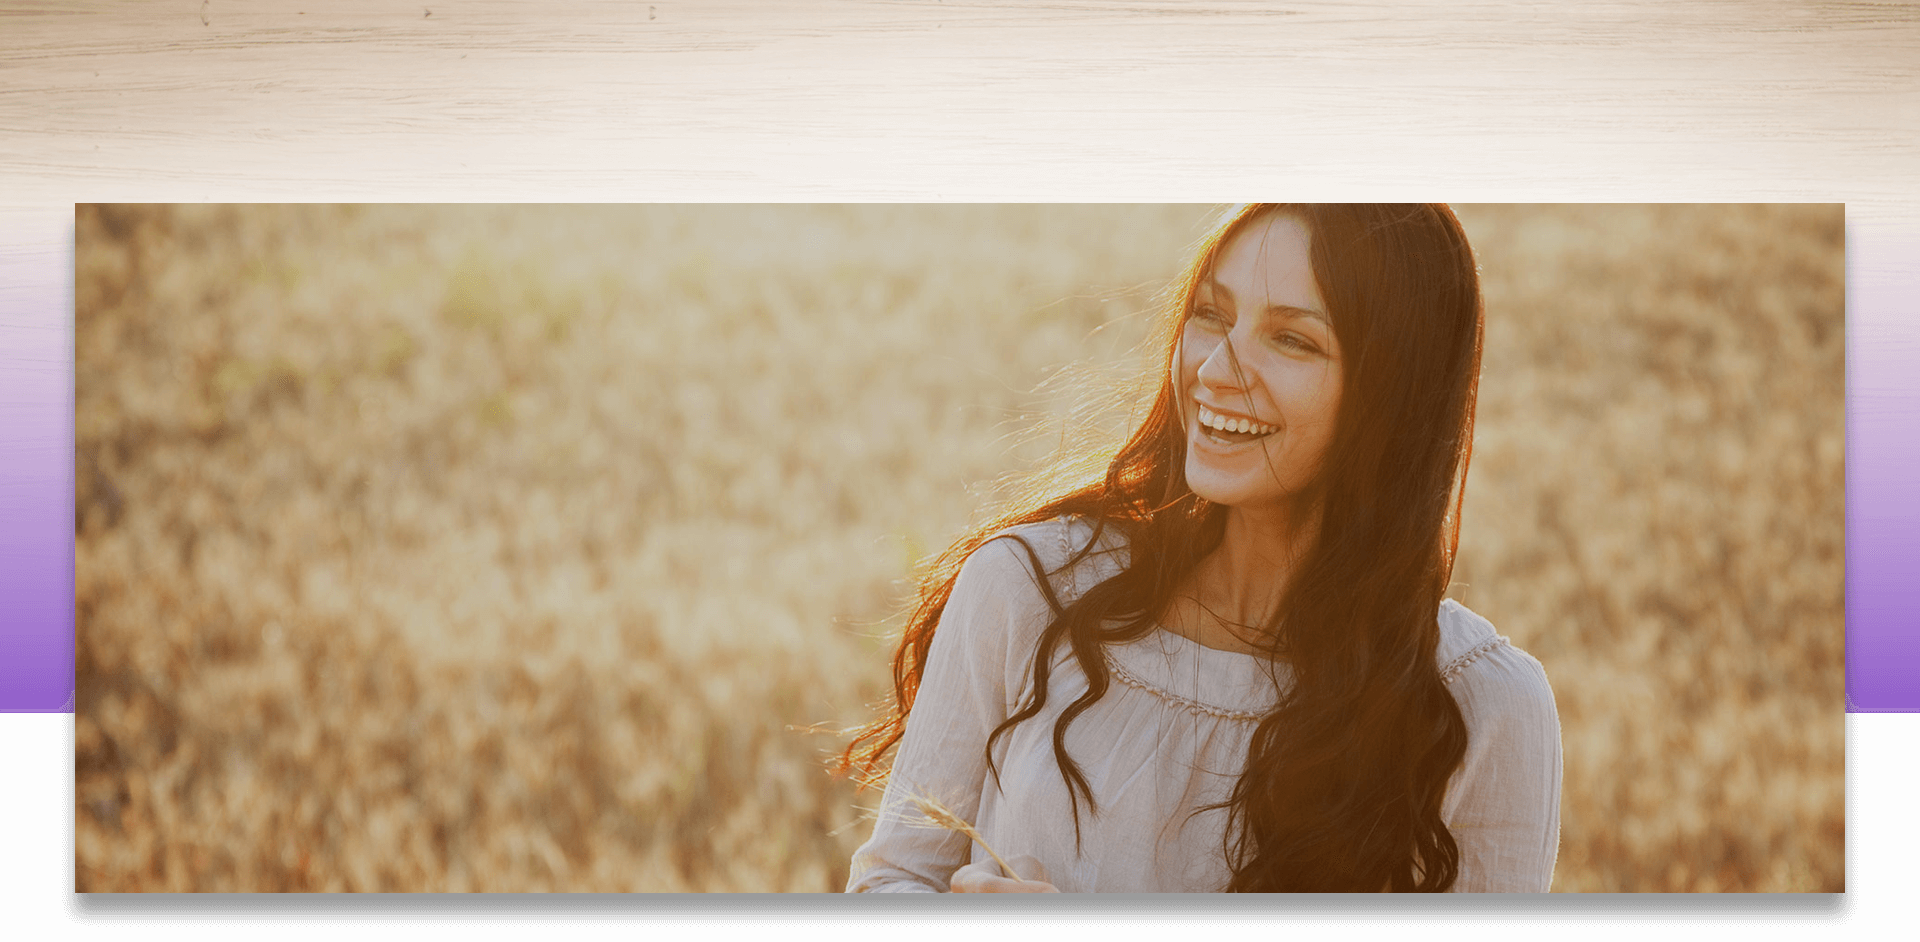 Smiling woman in a wheat field